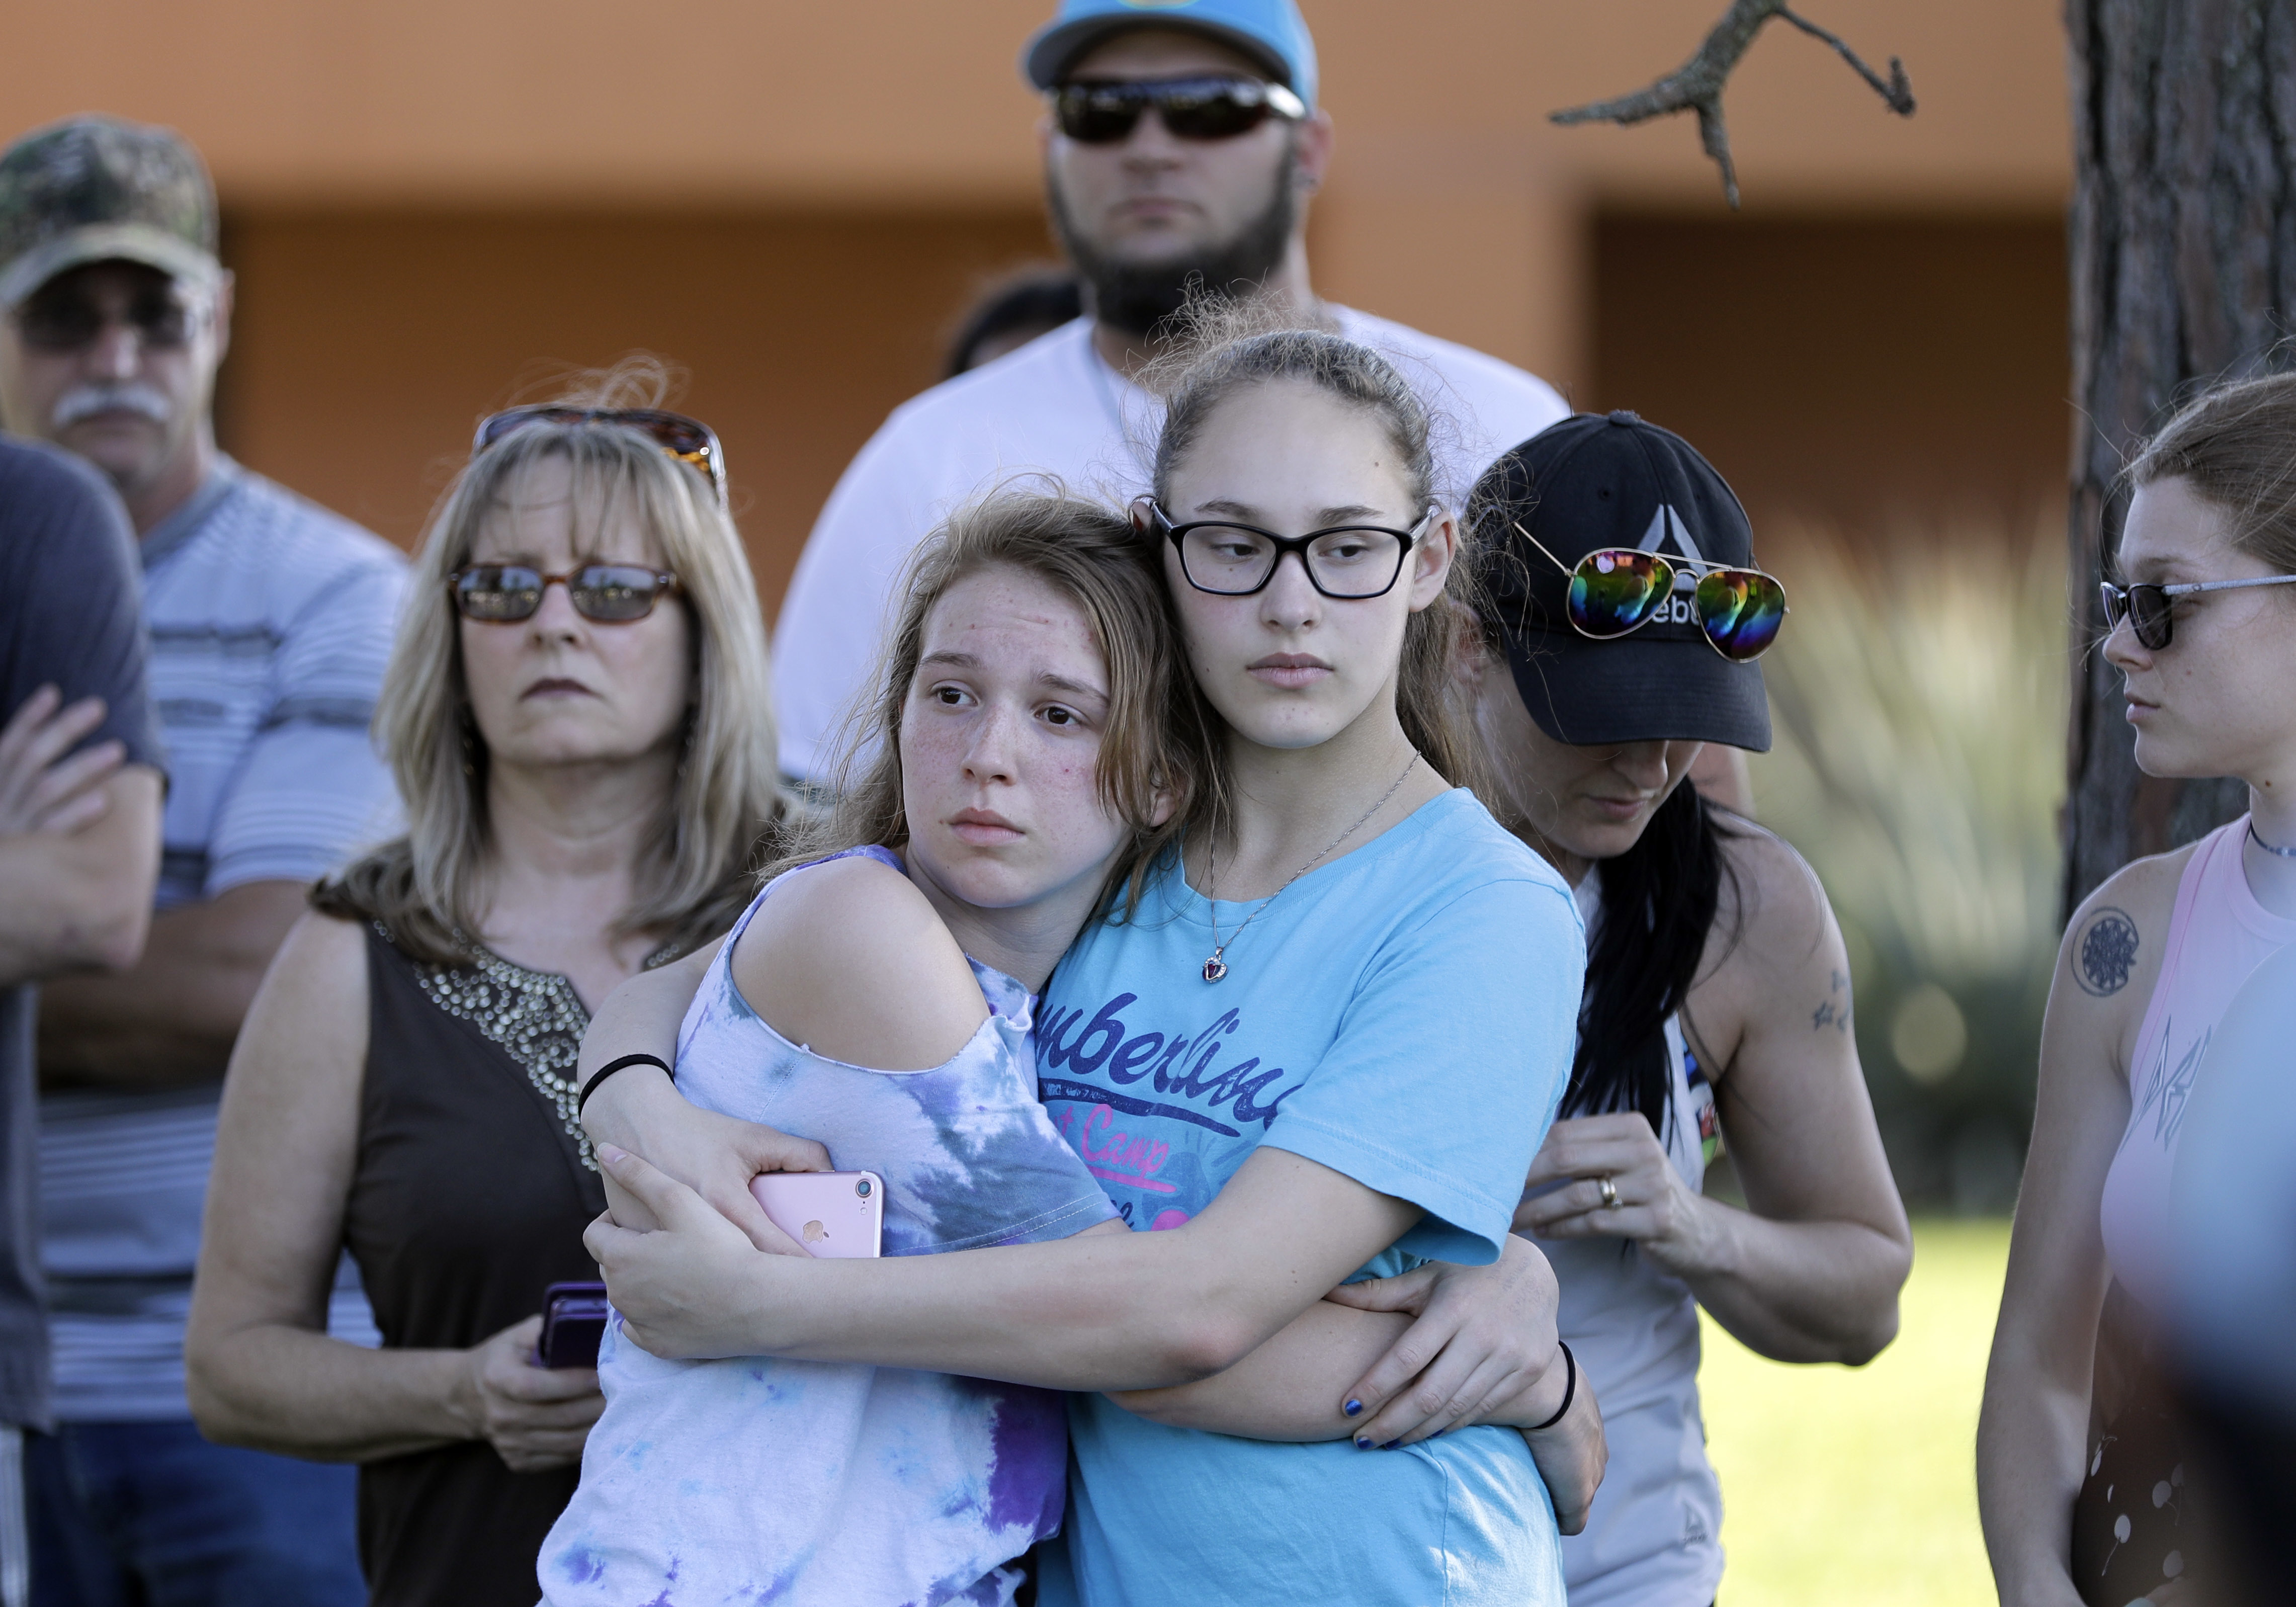 <div class='meta'><div class='origin-logo' data-origin='AP'></div><span class='caption-text' data-credit='AP'>Mourners wait for the start of a prayer vigil following a deadly shooting at Santa Fe High School in Santa Fe, Texas, on Friday, May 18, 2018.  (AP Photo/David J. Phillip)</span></div>